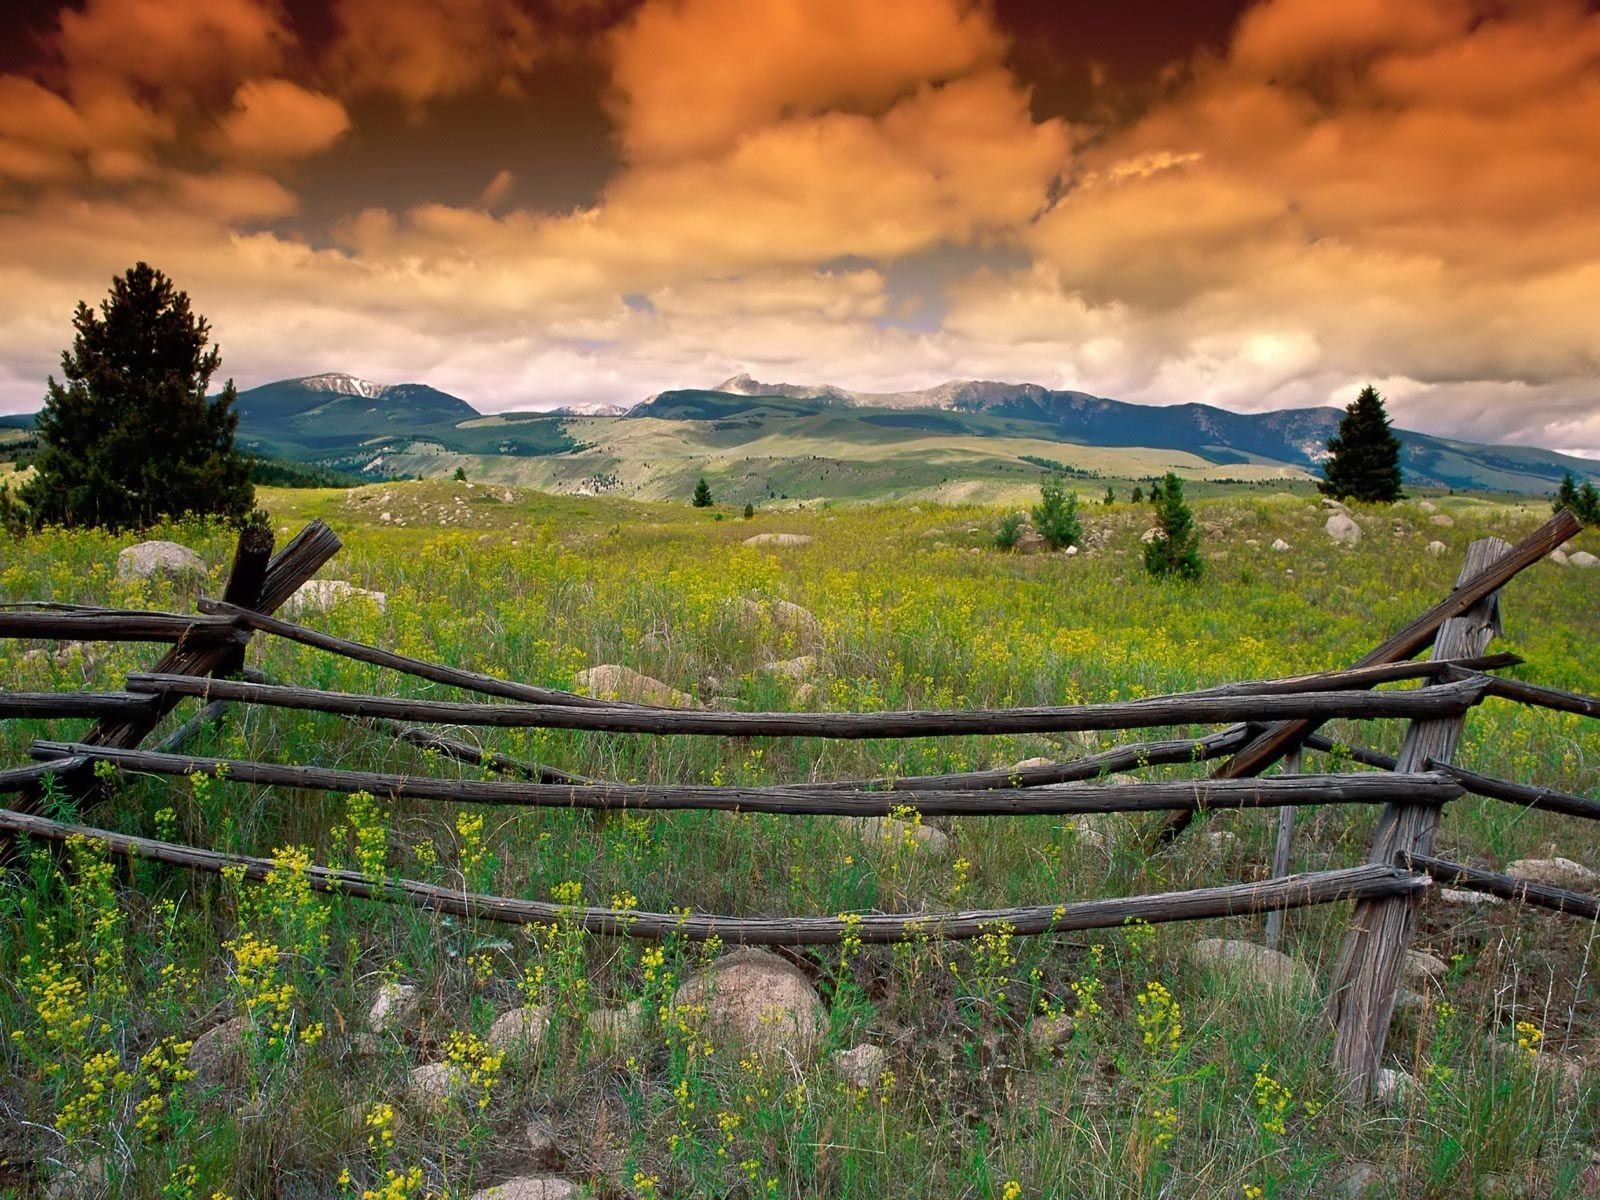 Landscapes Pictures Download Mountain Landscape Windows 7 Hd Wallpaper In High Resolution Great Falls Montana Big Sky Country Pretty Places